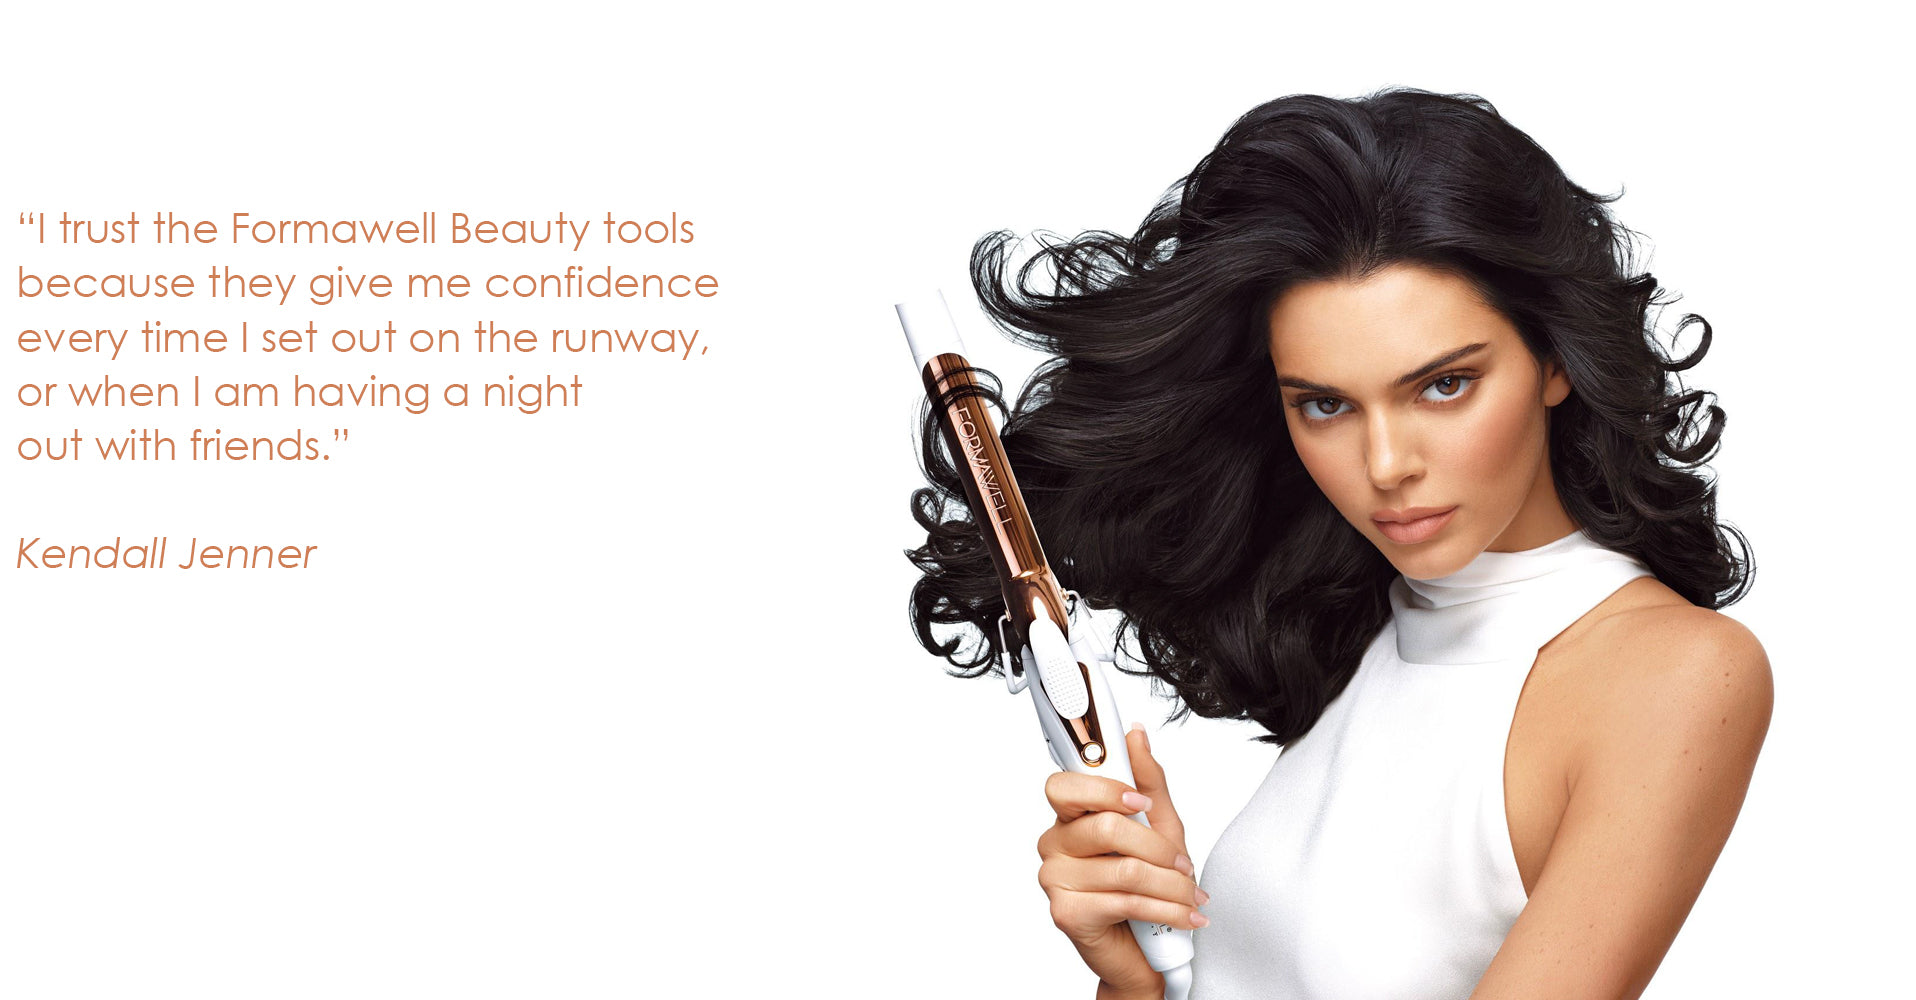 Kendall Jenner X Formawell beauty